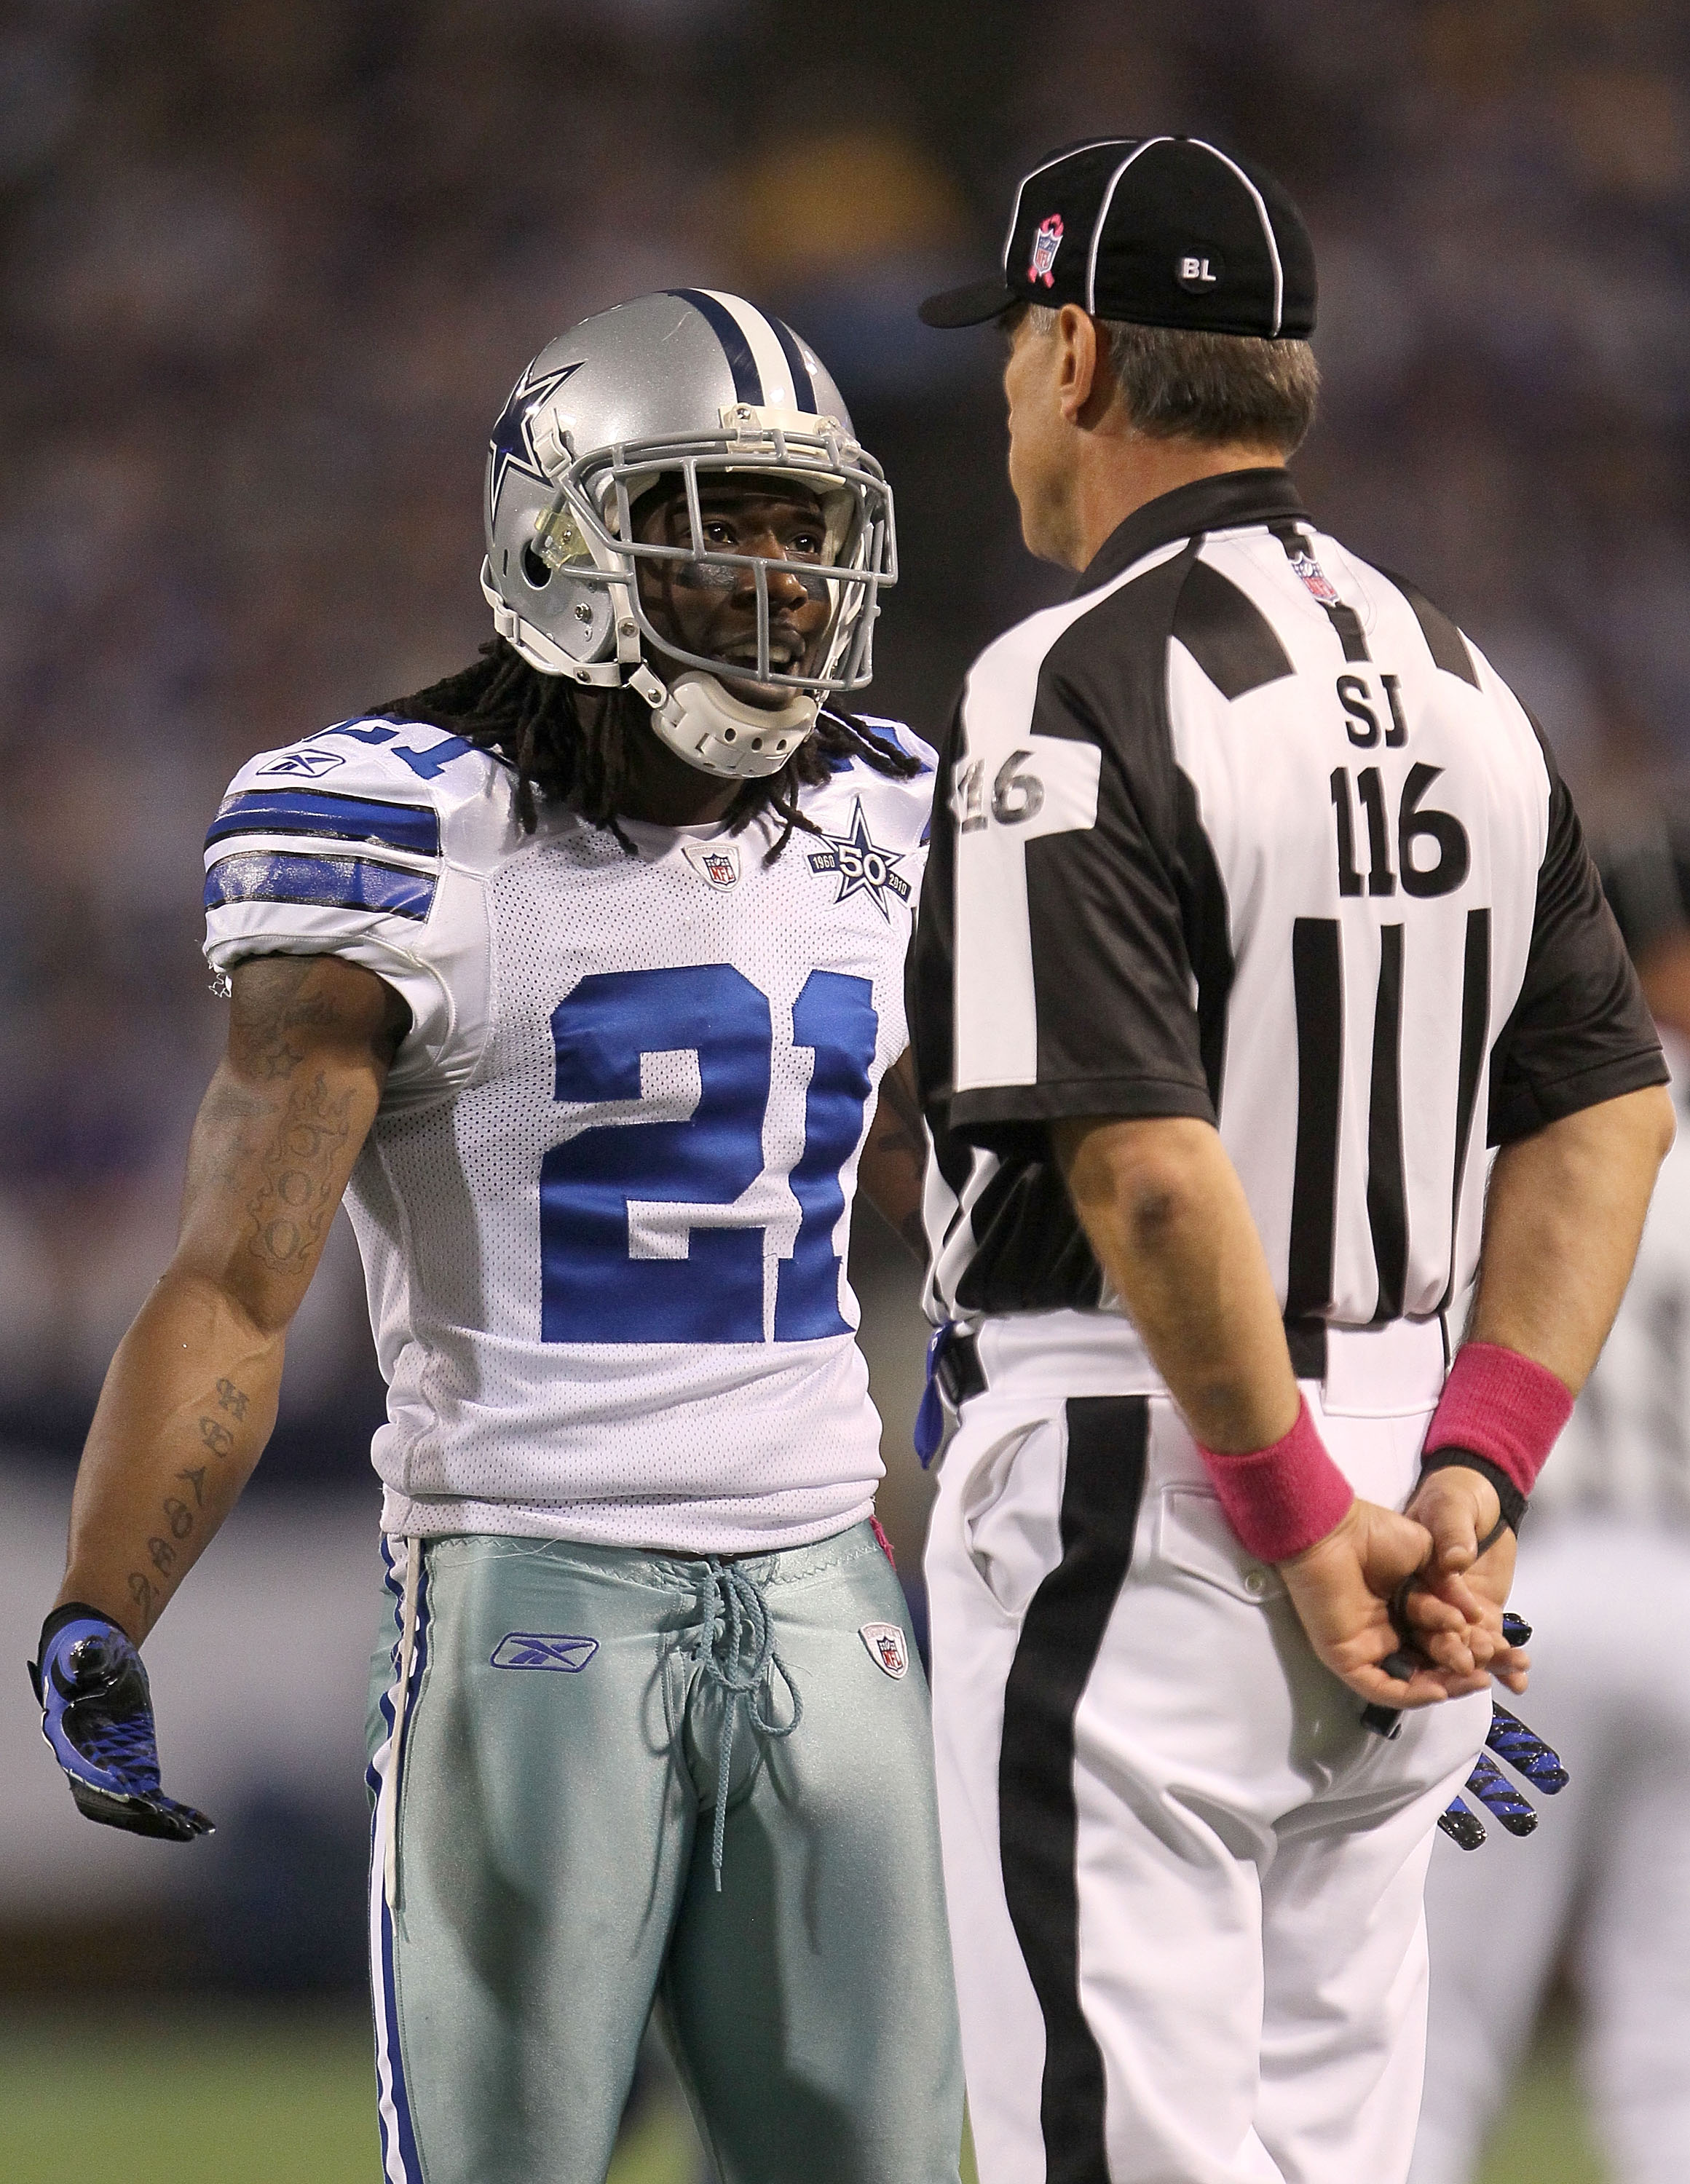 MINNEAPOLIS - OCTOBER 17:  Mike Jenkins #21 of the Dallas Cowboys argues with the referee during the game against the Minnesota Vikings at Mall of America Field on October 17, 2010 in Minneapolis, Minnesota.  (Photo by Jeff Gross/Getty Images)